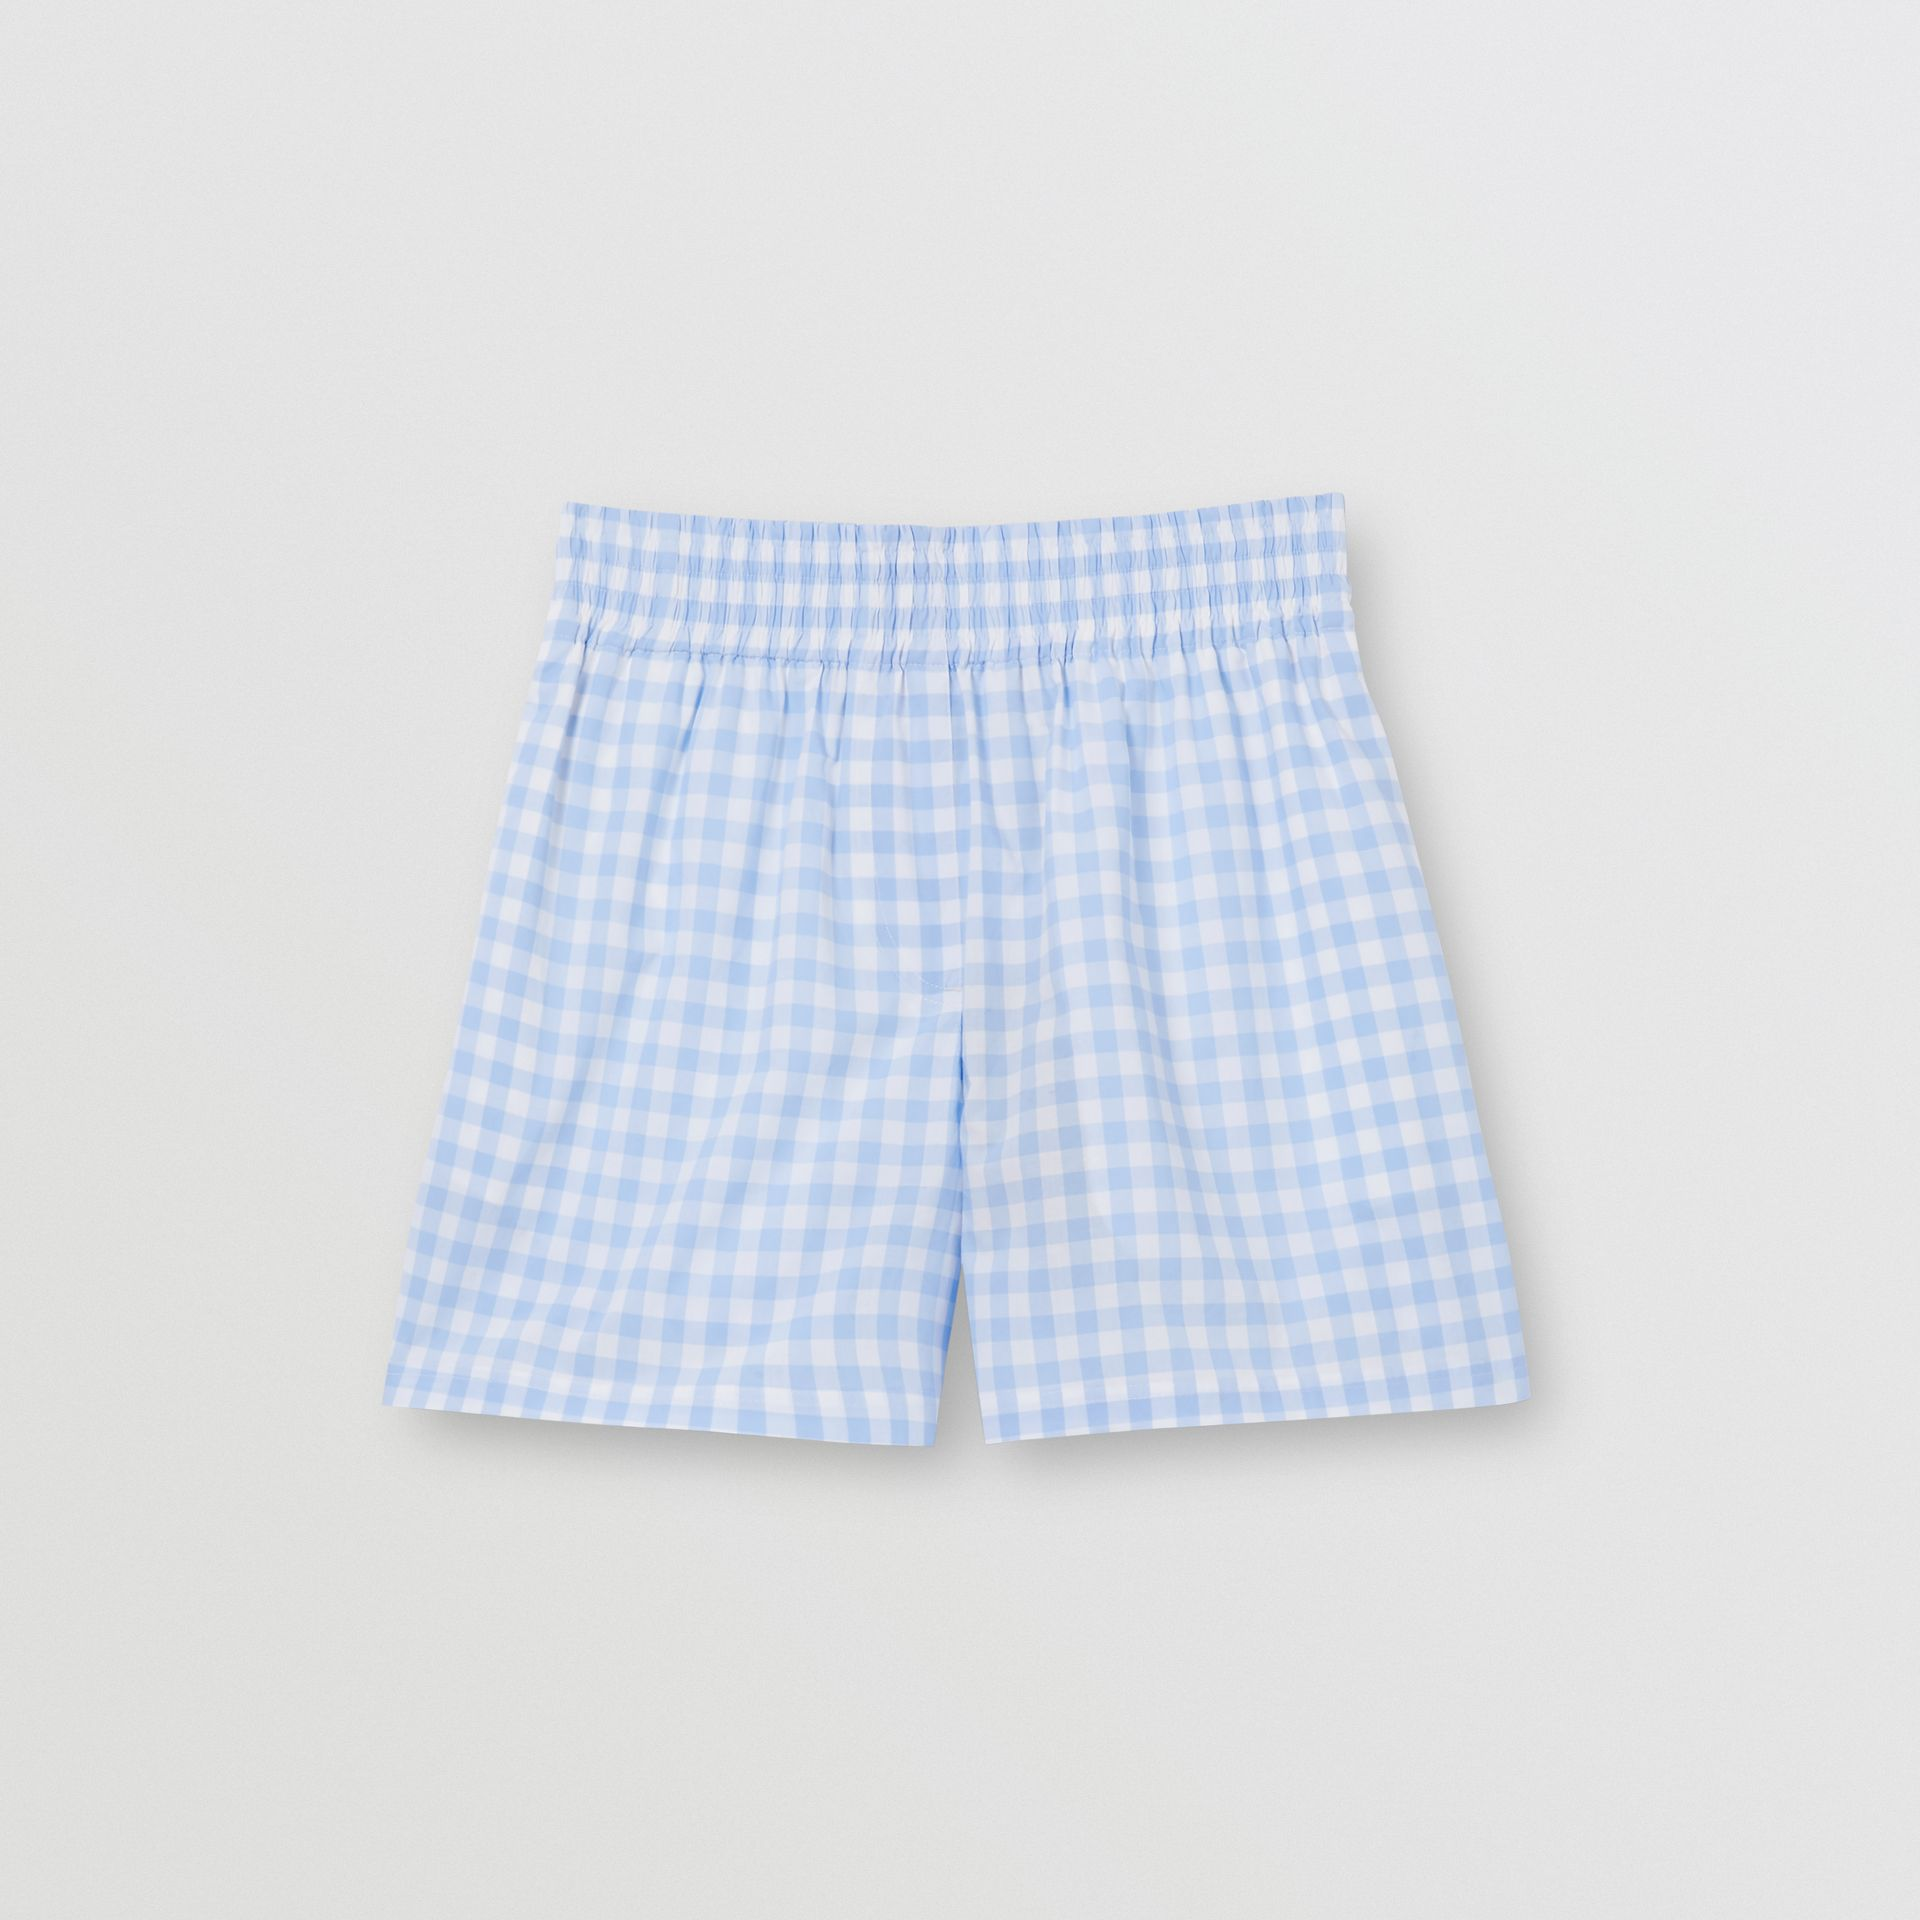 Gingham Cotton Shorts in Pale Blue - Women | Burberry - gallery image 3